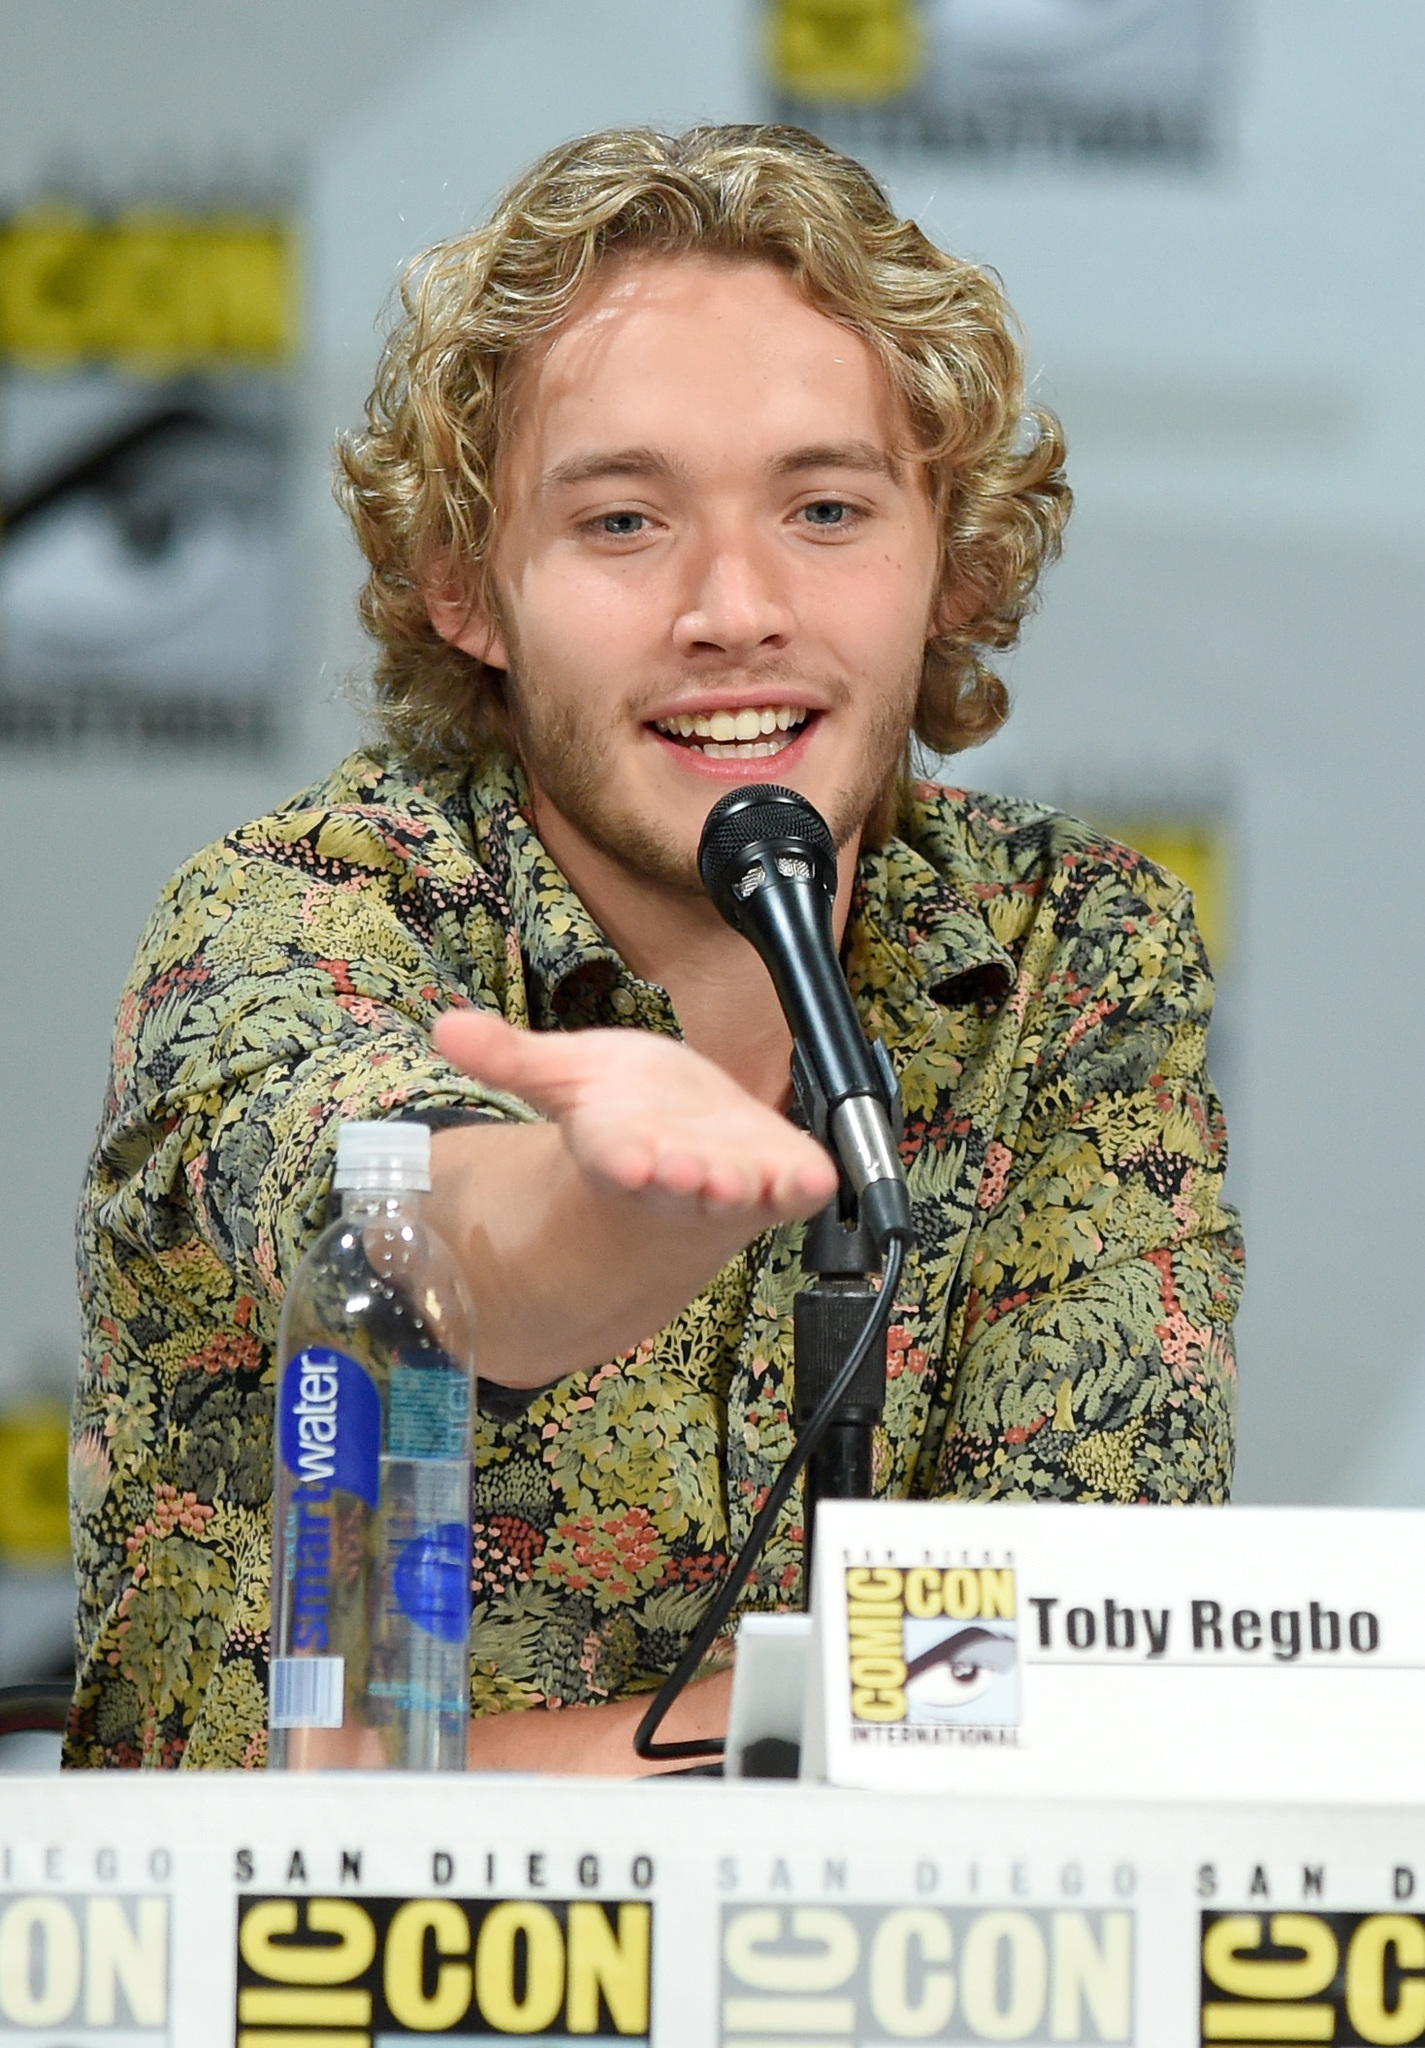 Toby Regbo at an event for Reign (2013)